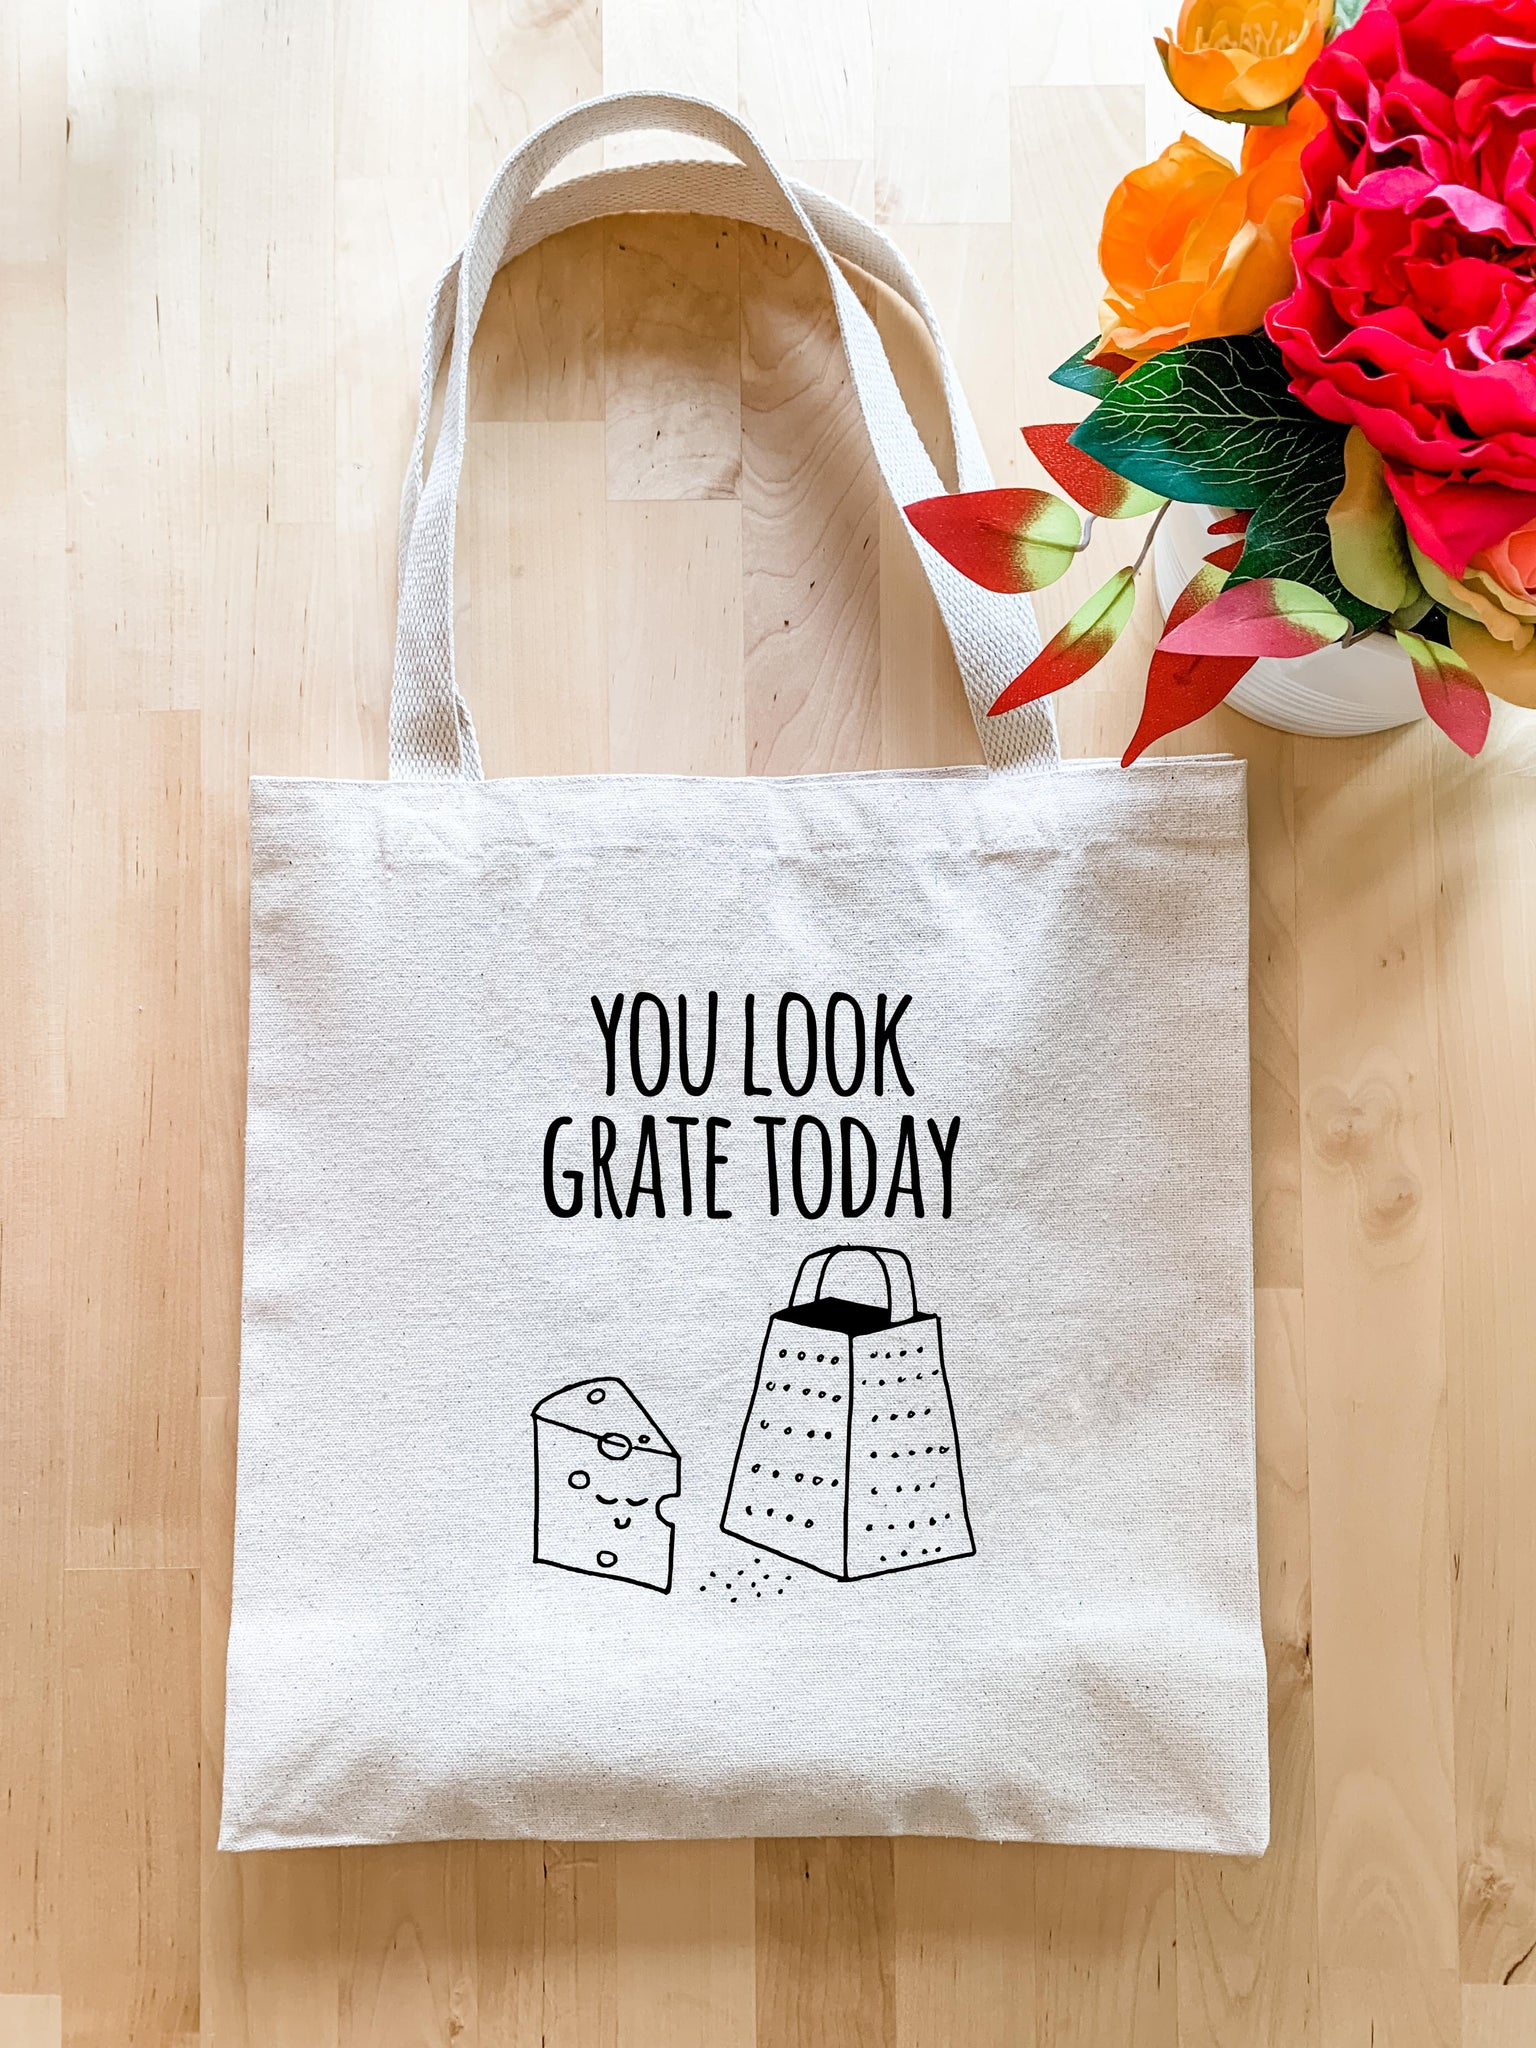 You Look Grate Today - Tote Bag - MoonlightMakers